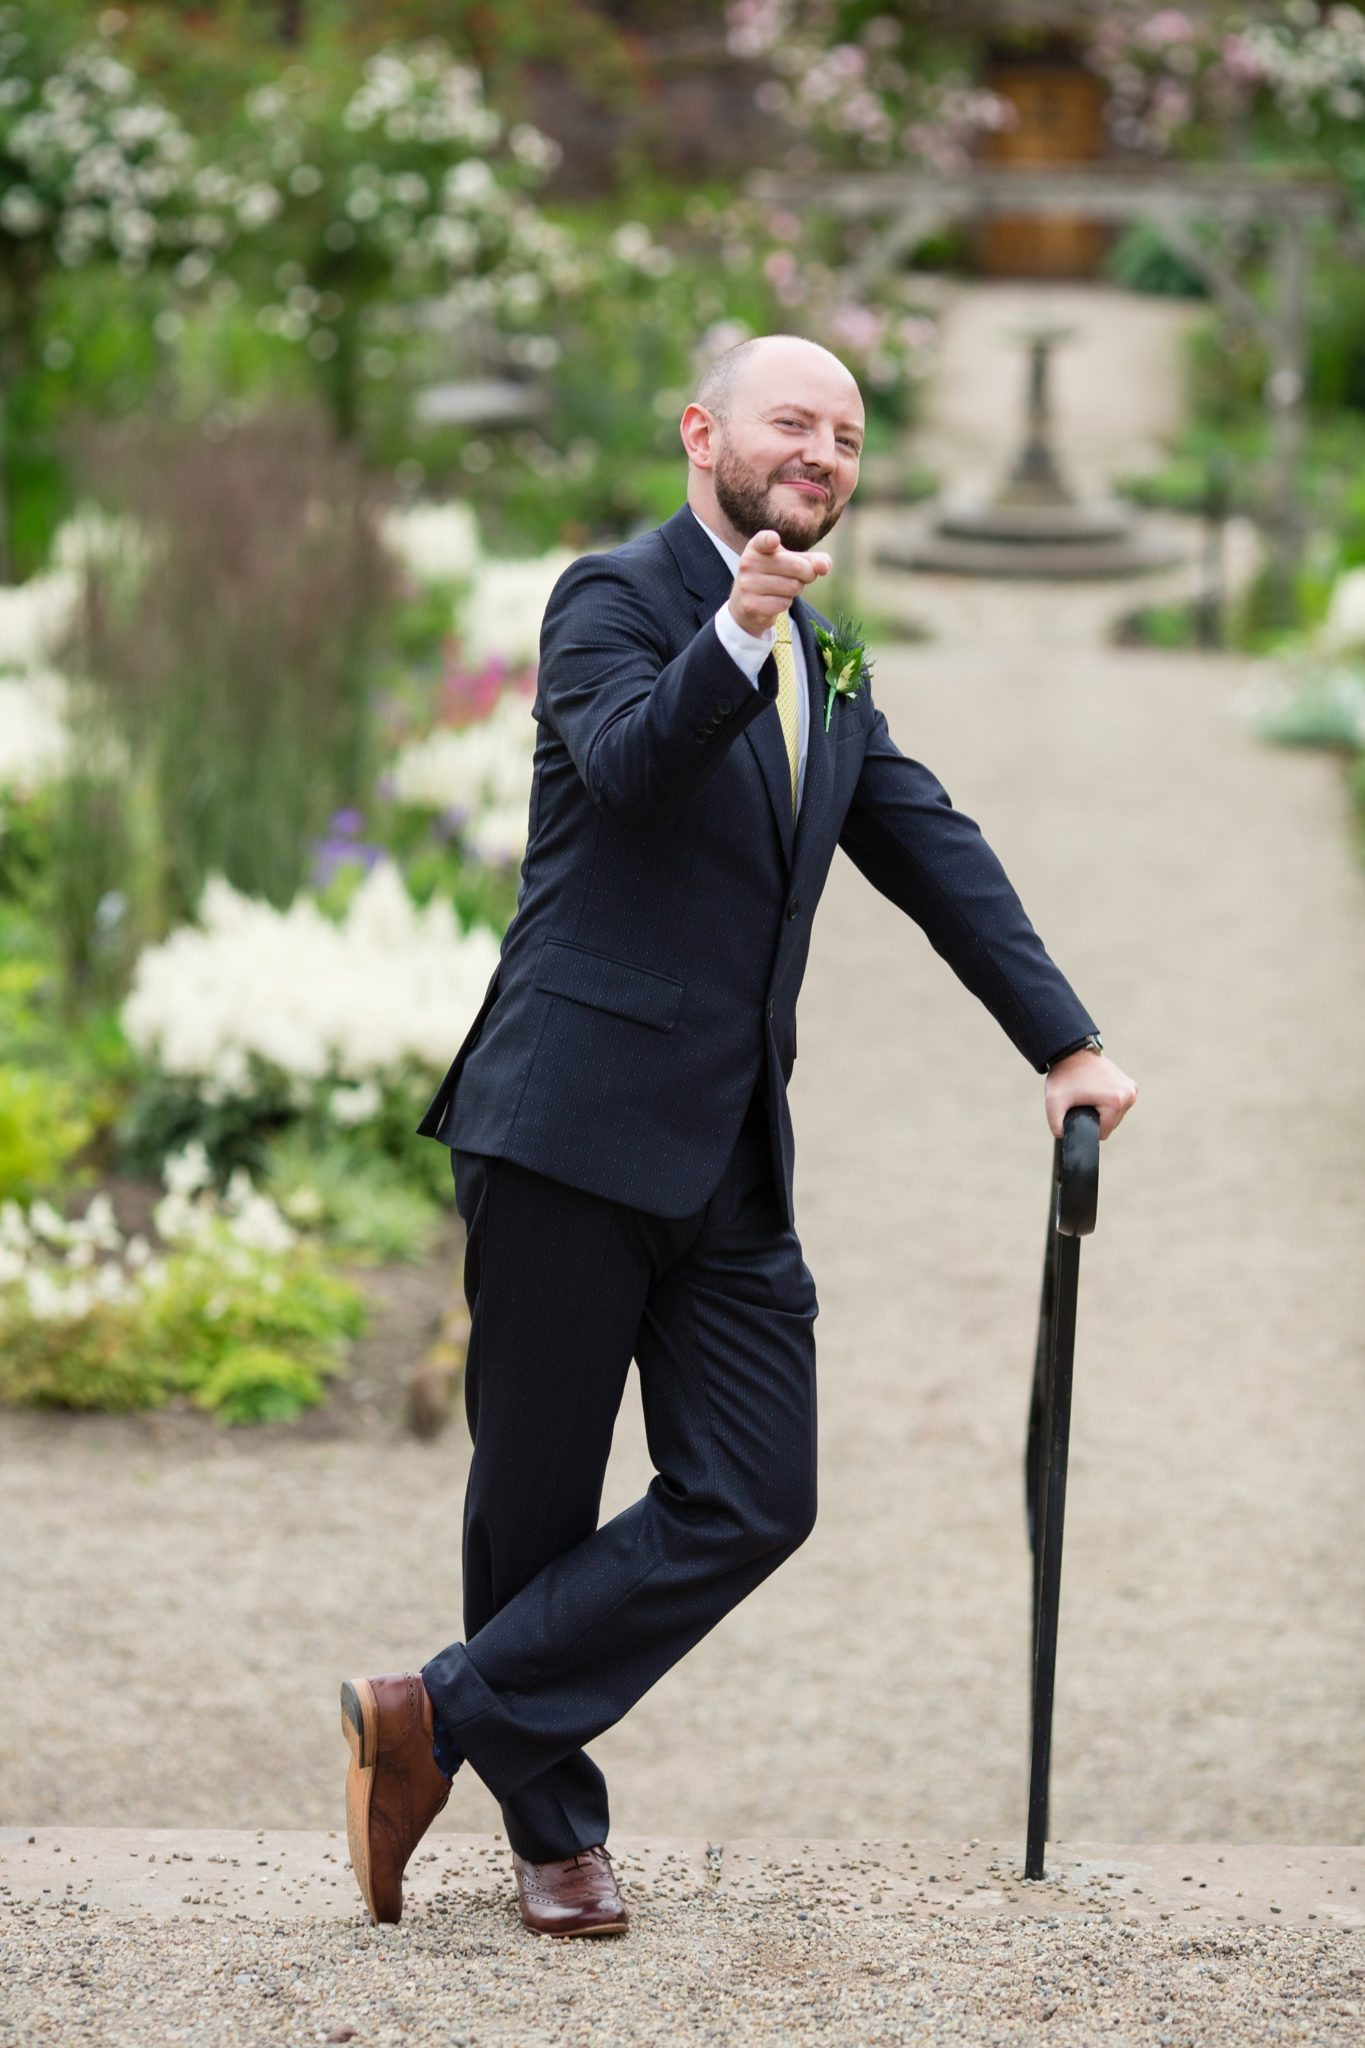 groom pointing at camera holding and leaning on cane